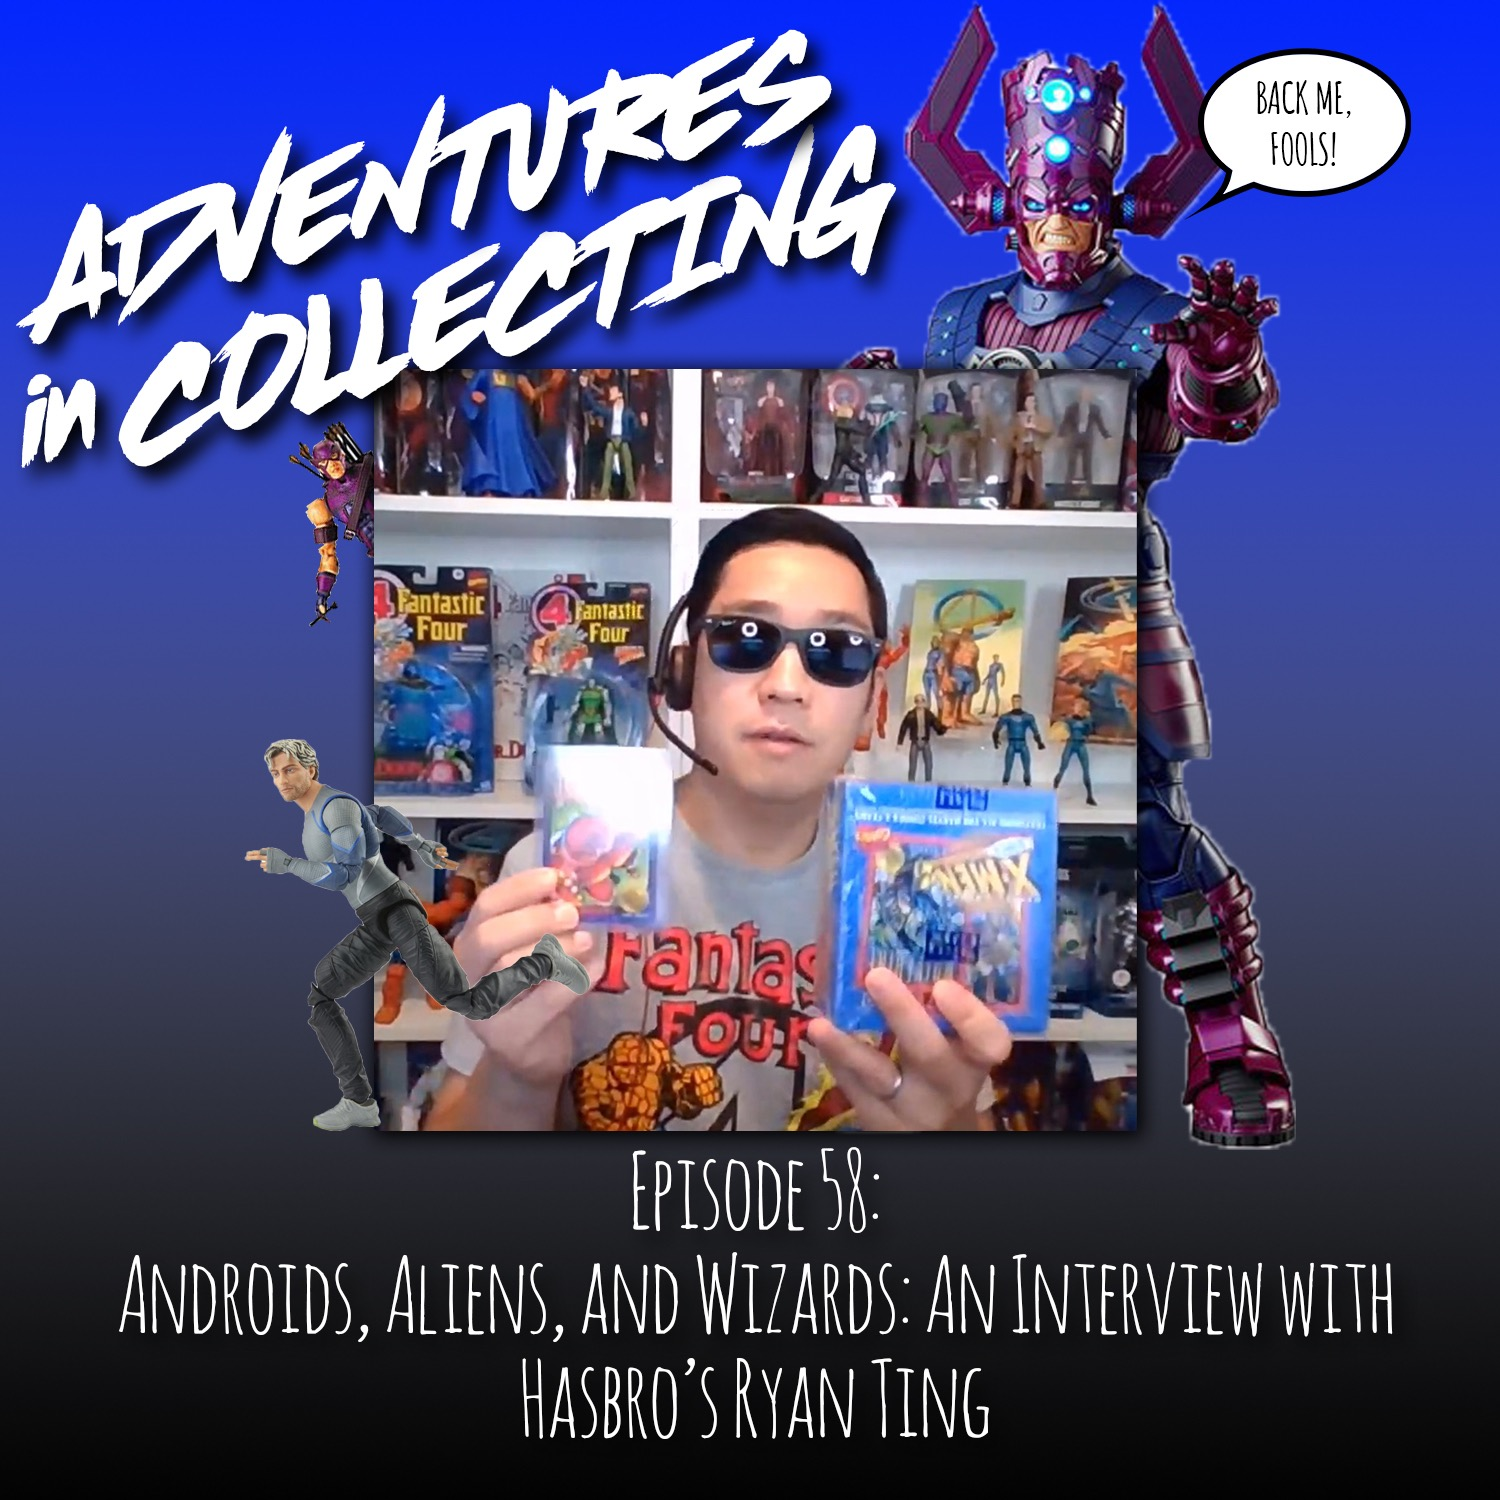 Download the latest Adventures in Collecting episode!